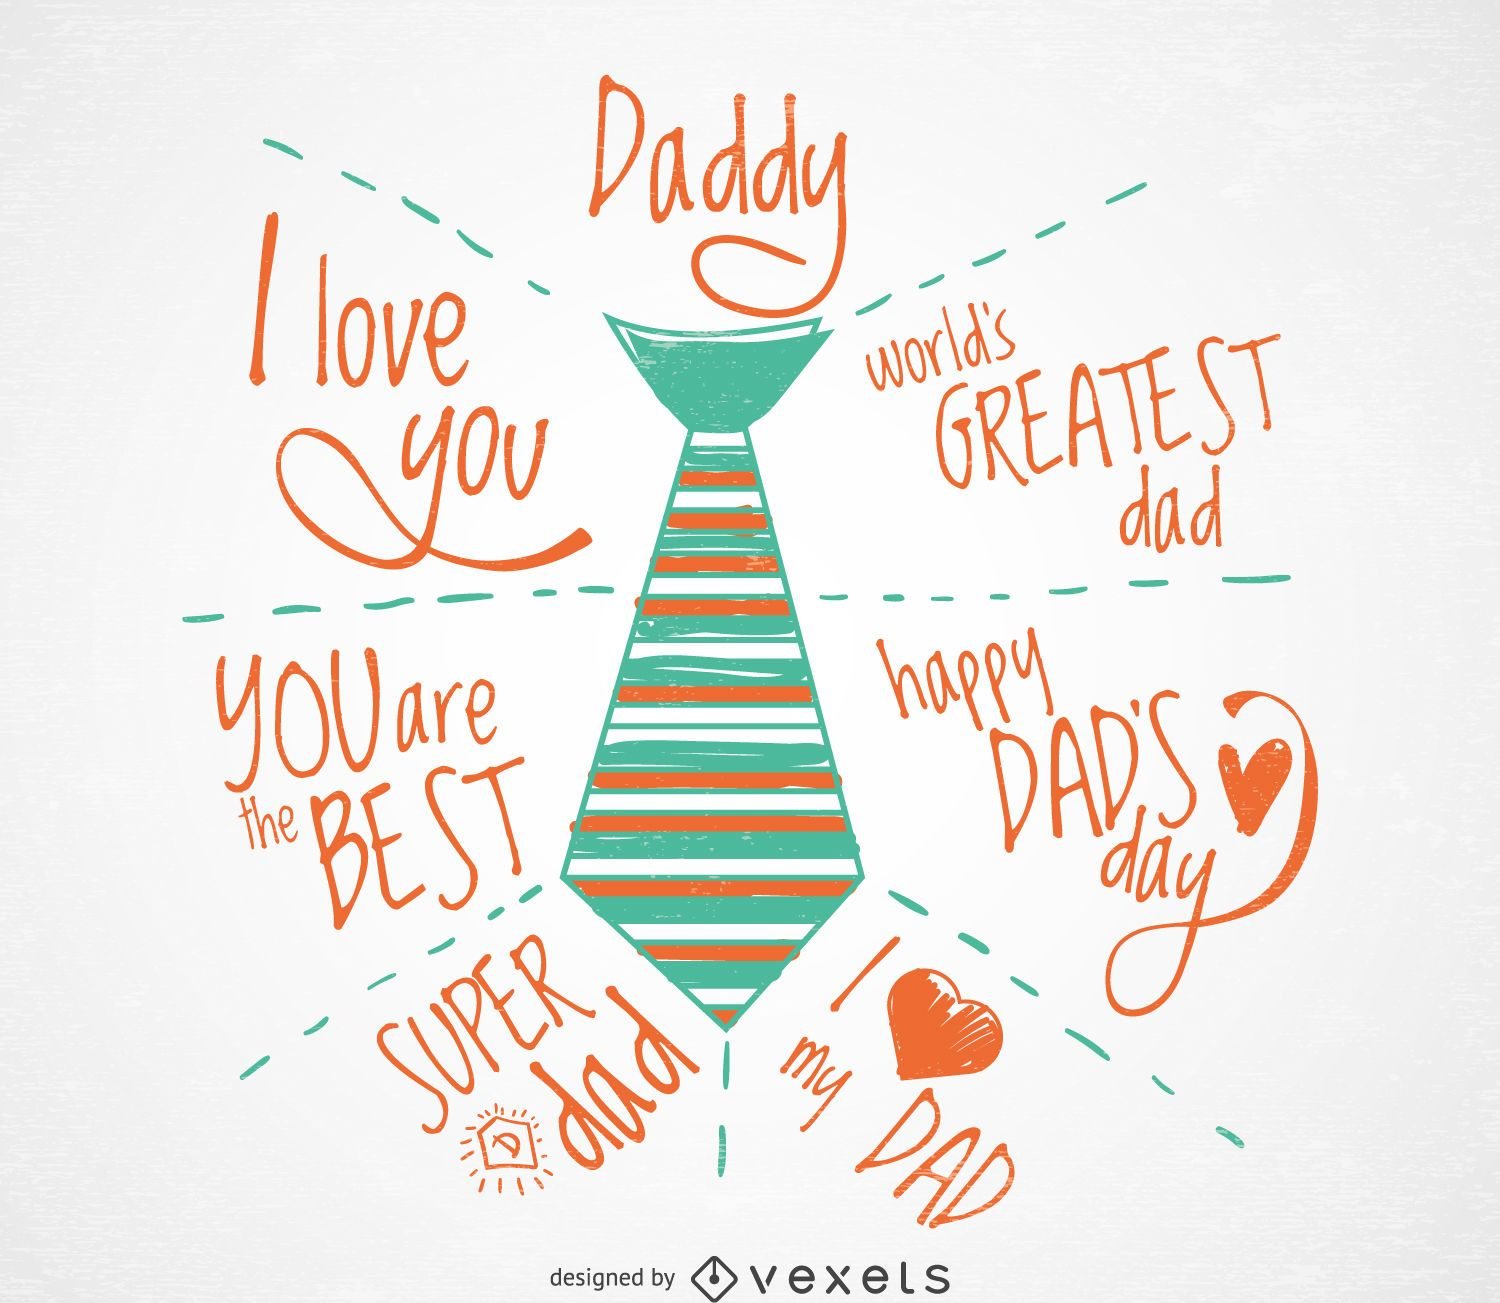 Fathers day greeting card vector download fathers day greeting card download large image 1900x1650px license image user m4hsunfo